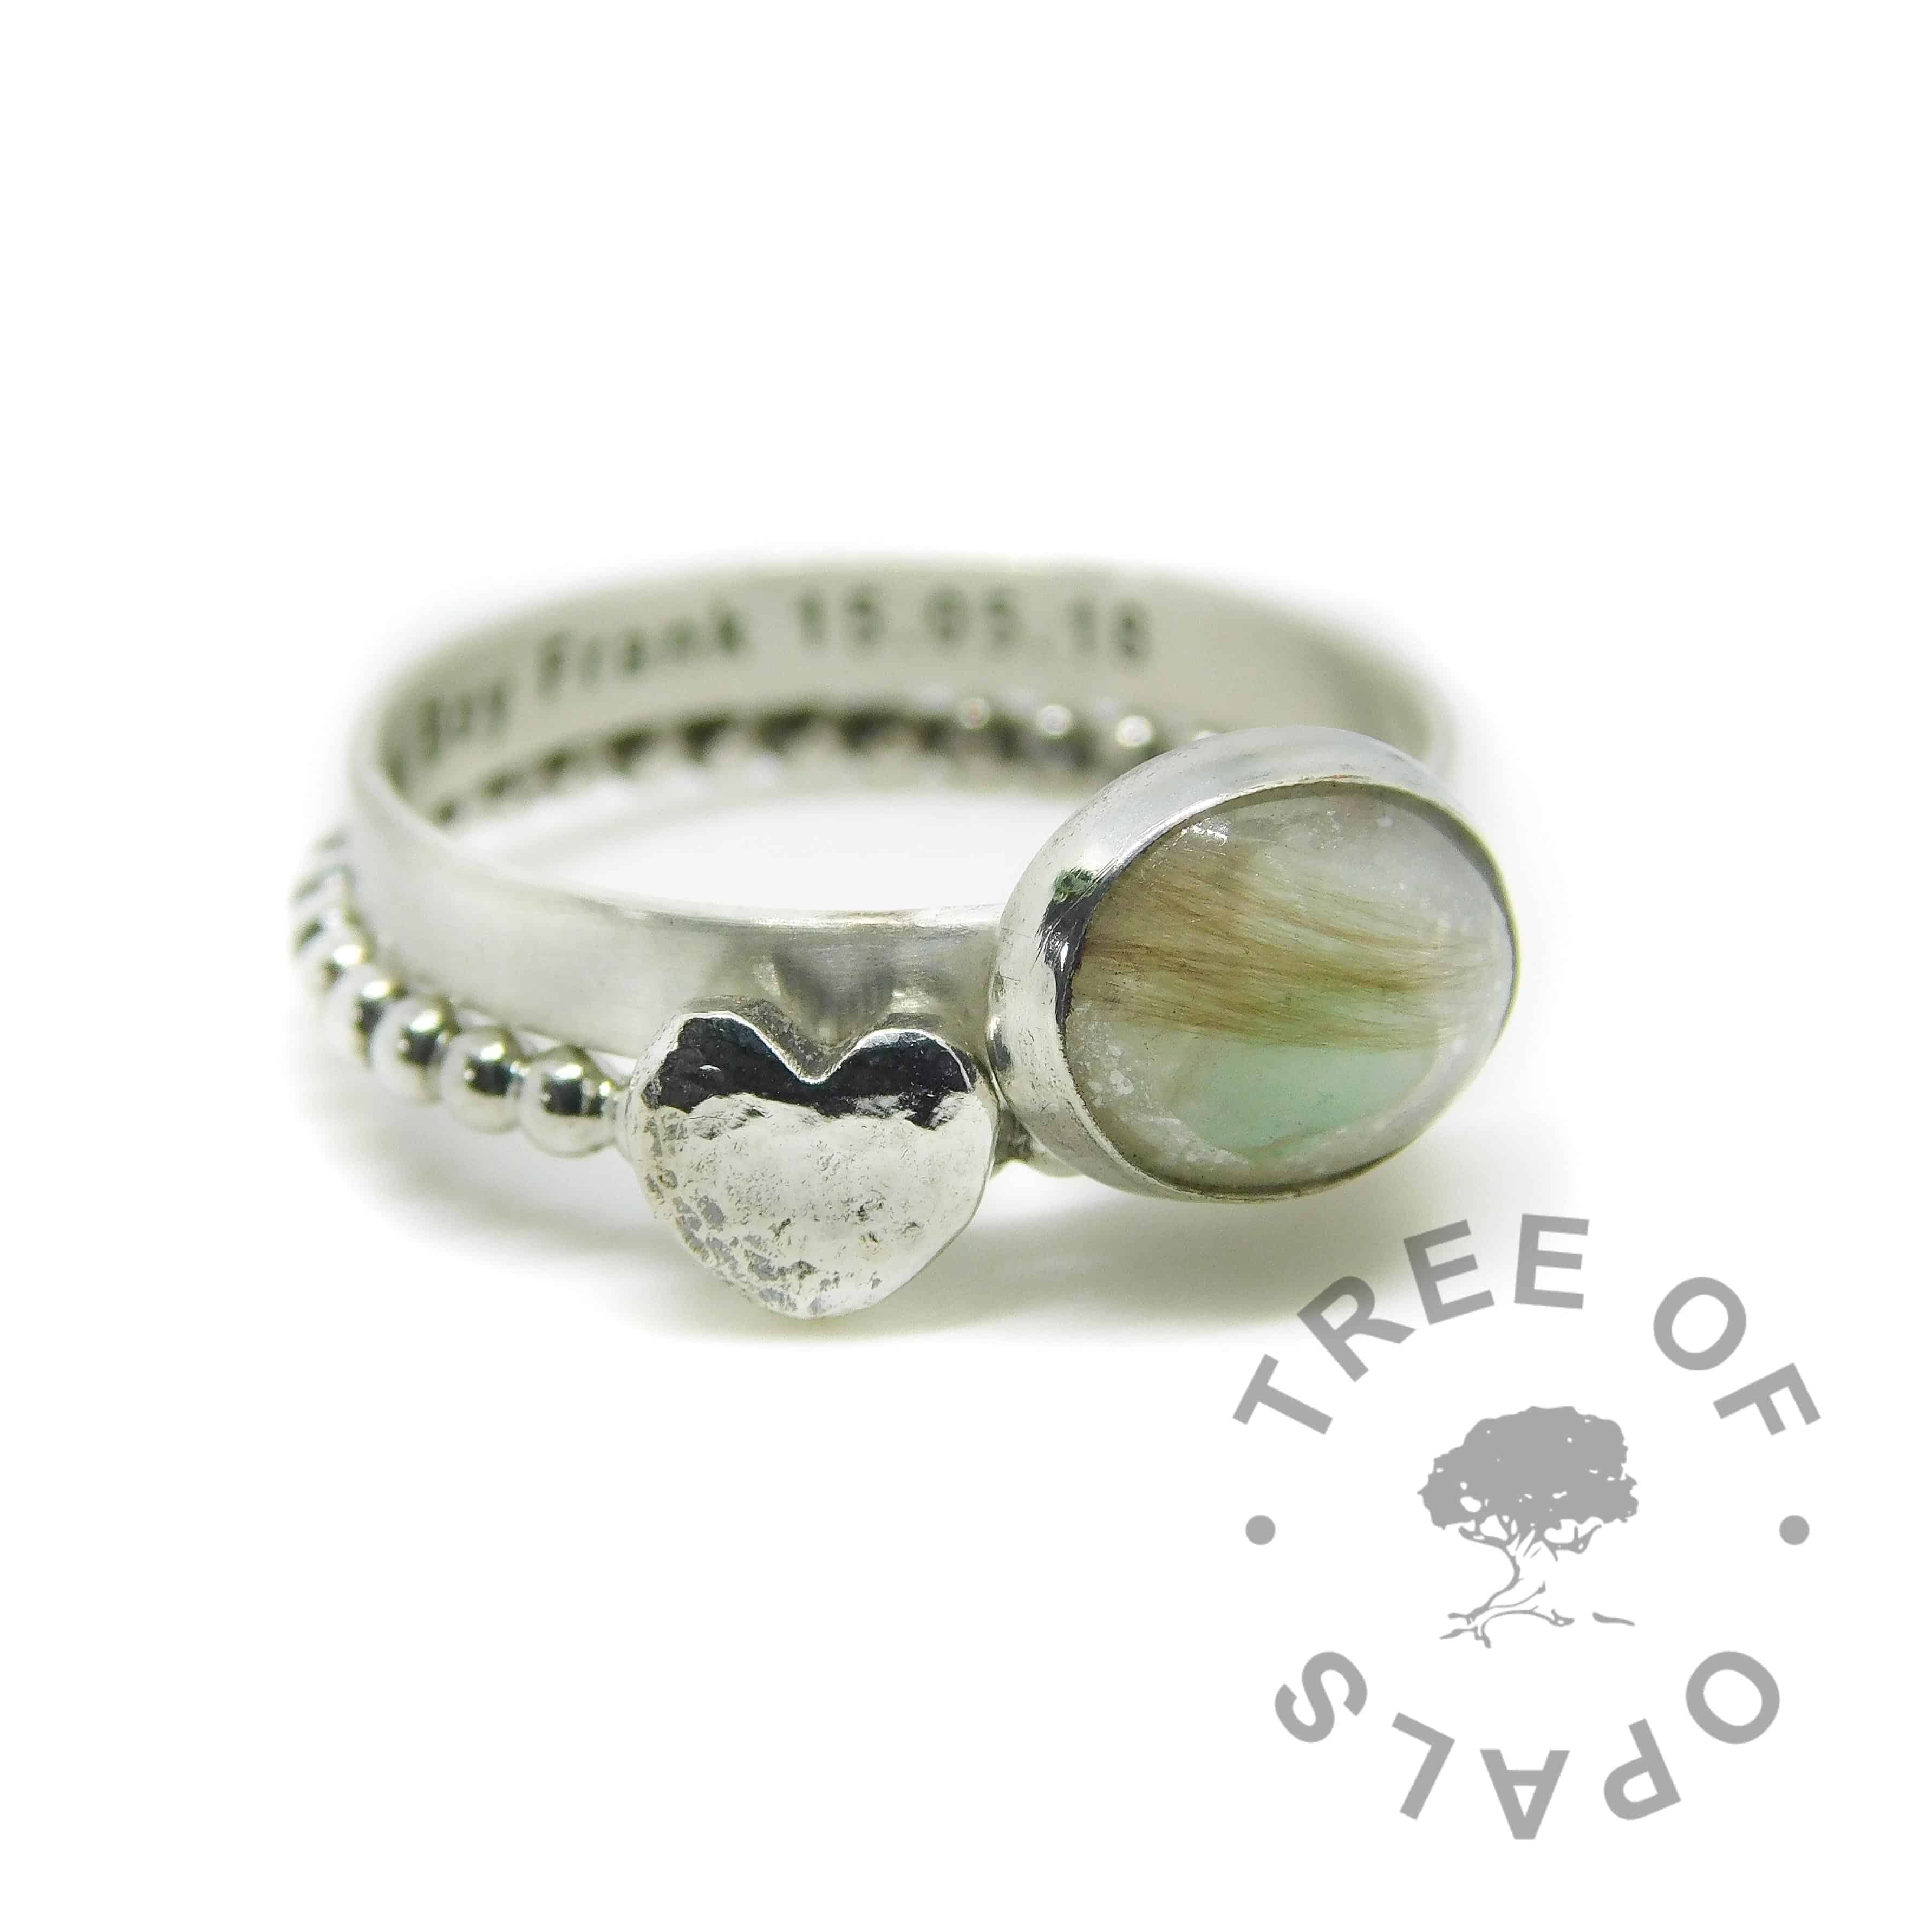 engraved lock of hair ring with peridot and unicorn white sparkles and bubble wire and textured heart accent stacker